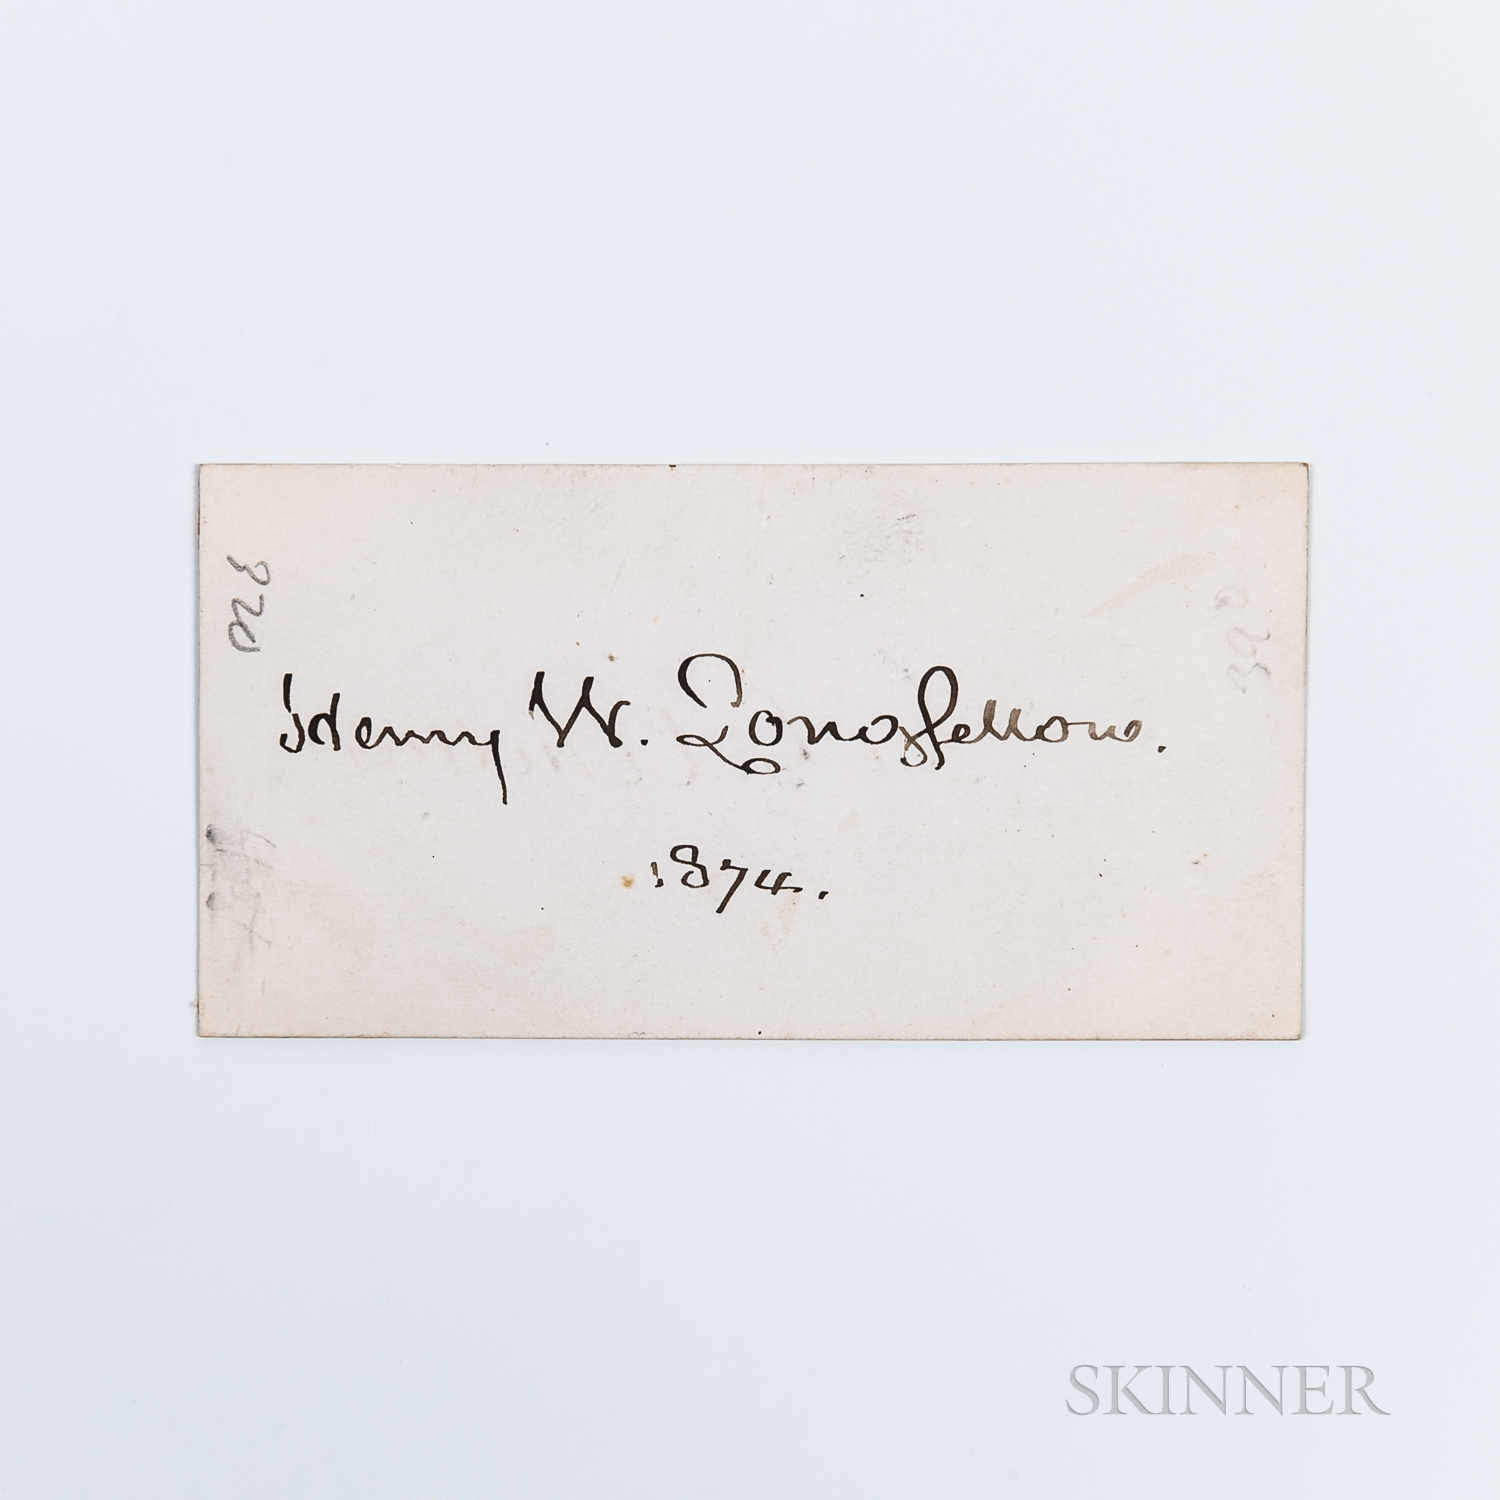 Longfellow, Henry Wadsworth (1807-1882) Signed Card, 1874.